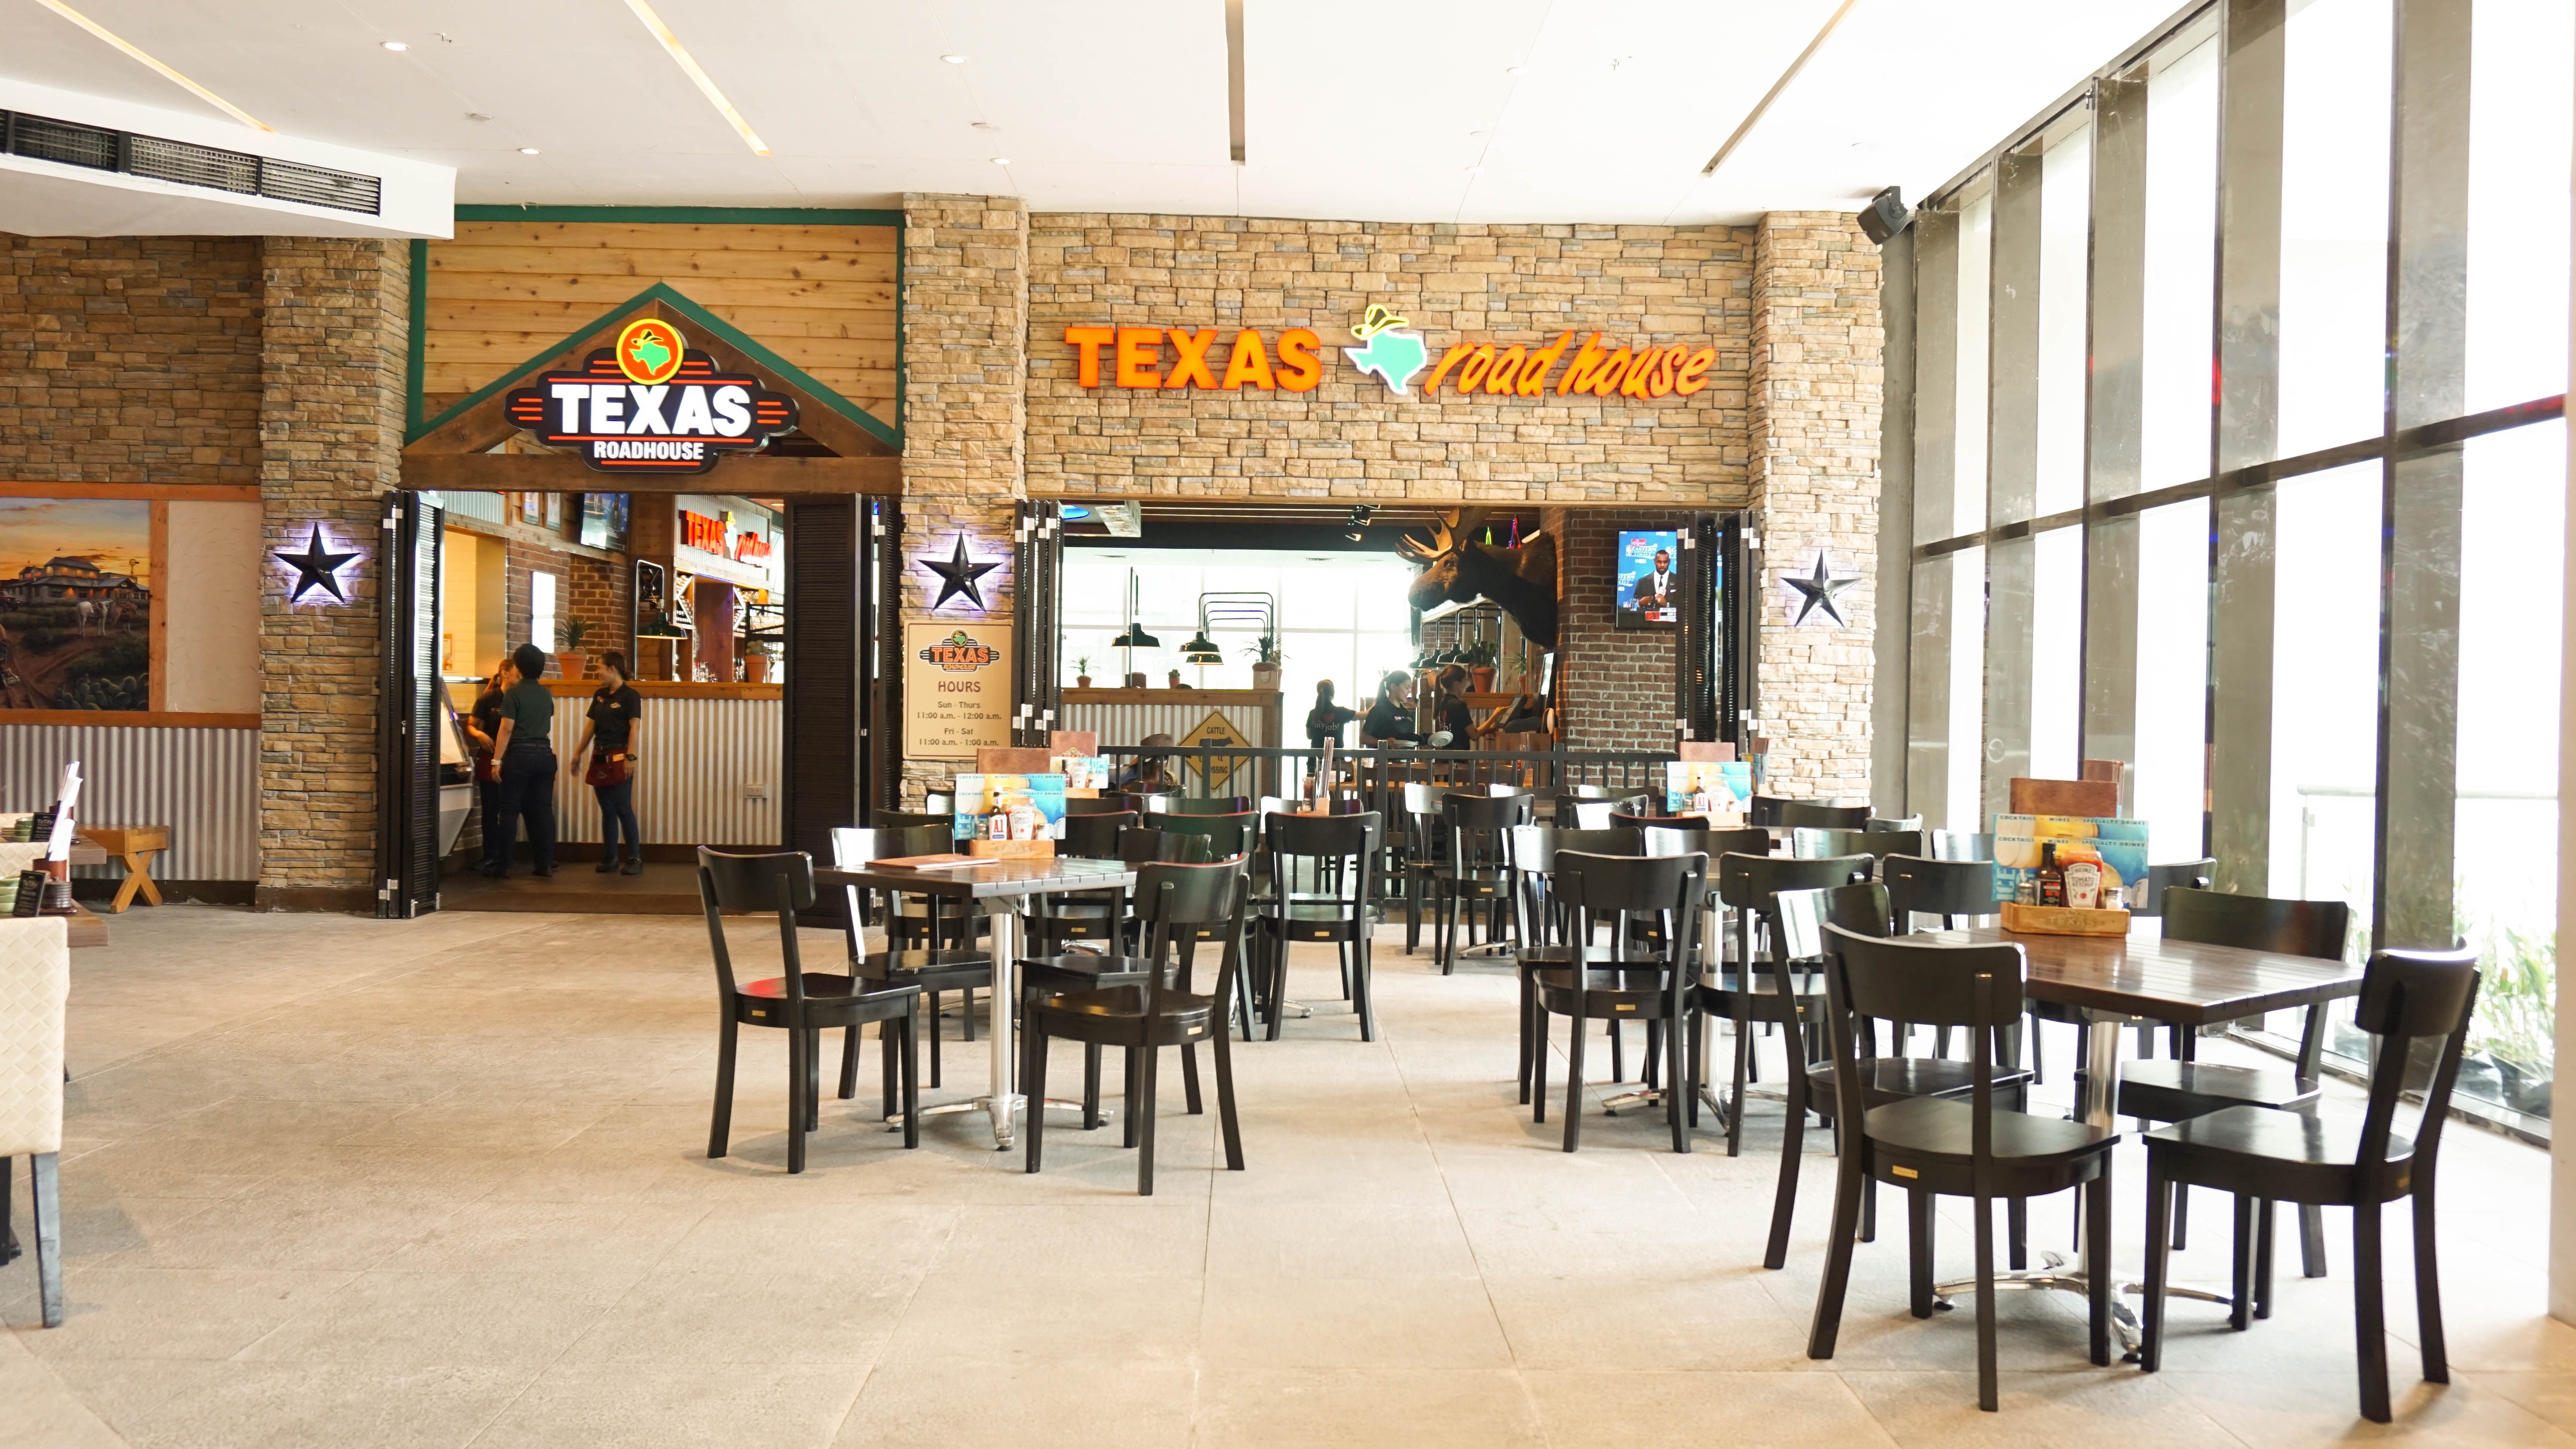 Texas Roadhouse, where to eat Tex-Mex in Metro Manila, Tex-Mex restaurants in BGC Uptown Taguig City Metro Manila Philippines, family restaurants in Metro Manila, where to eat American food in Metro Manila, zomatoph,